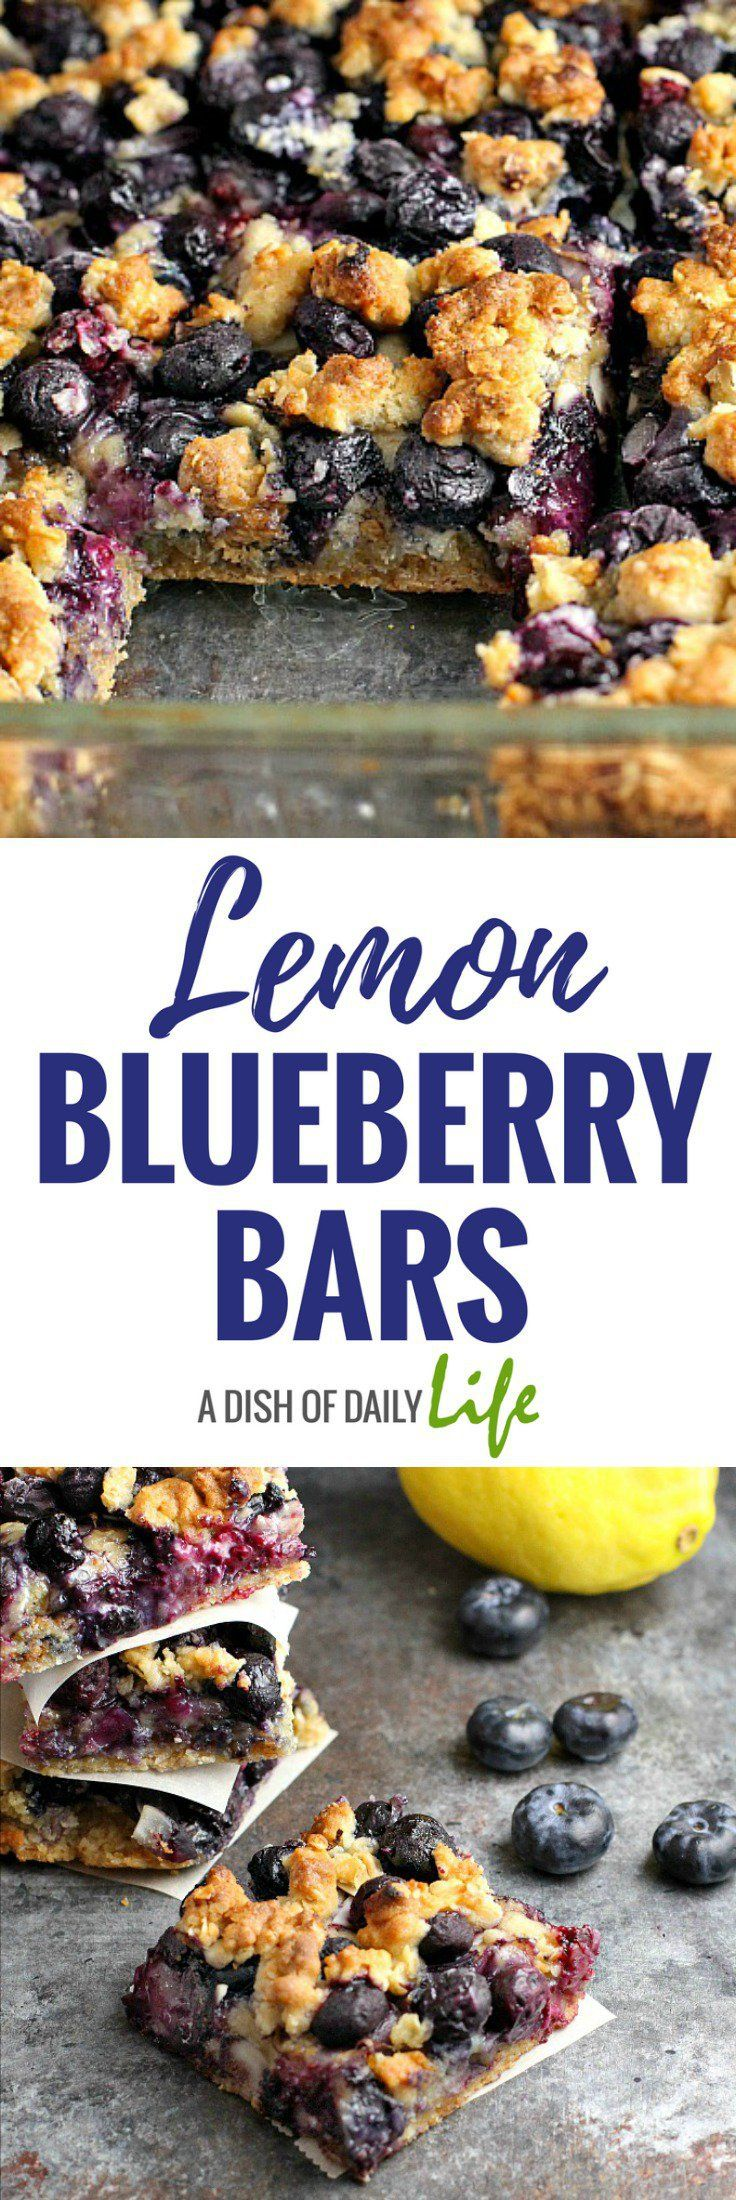 Check out Lemon Blueberry Bars. It's so easy to make ...